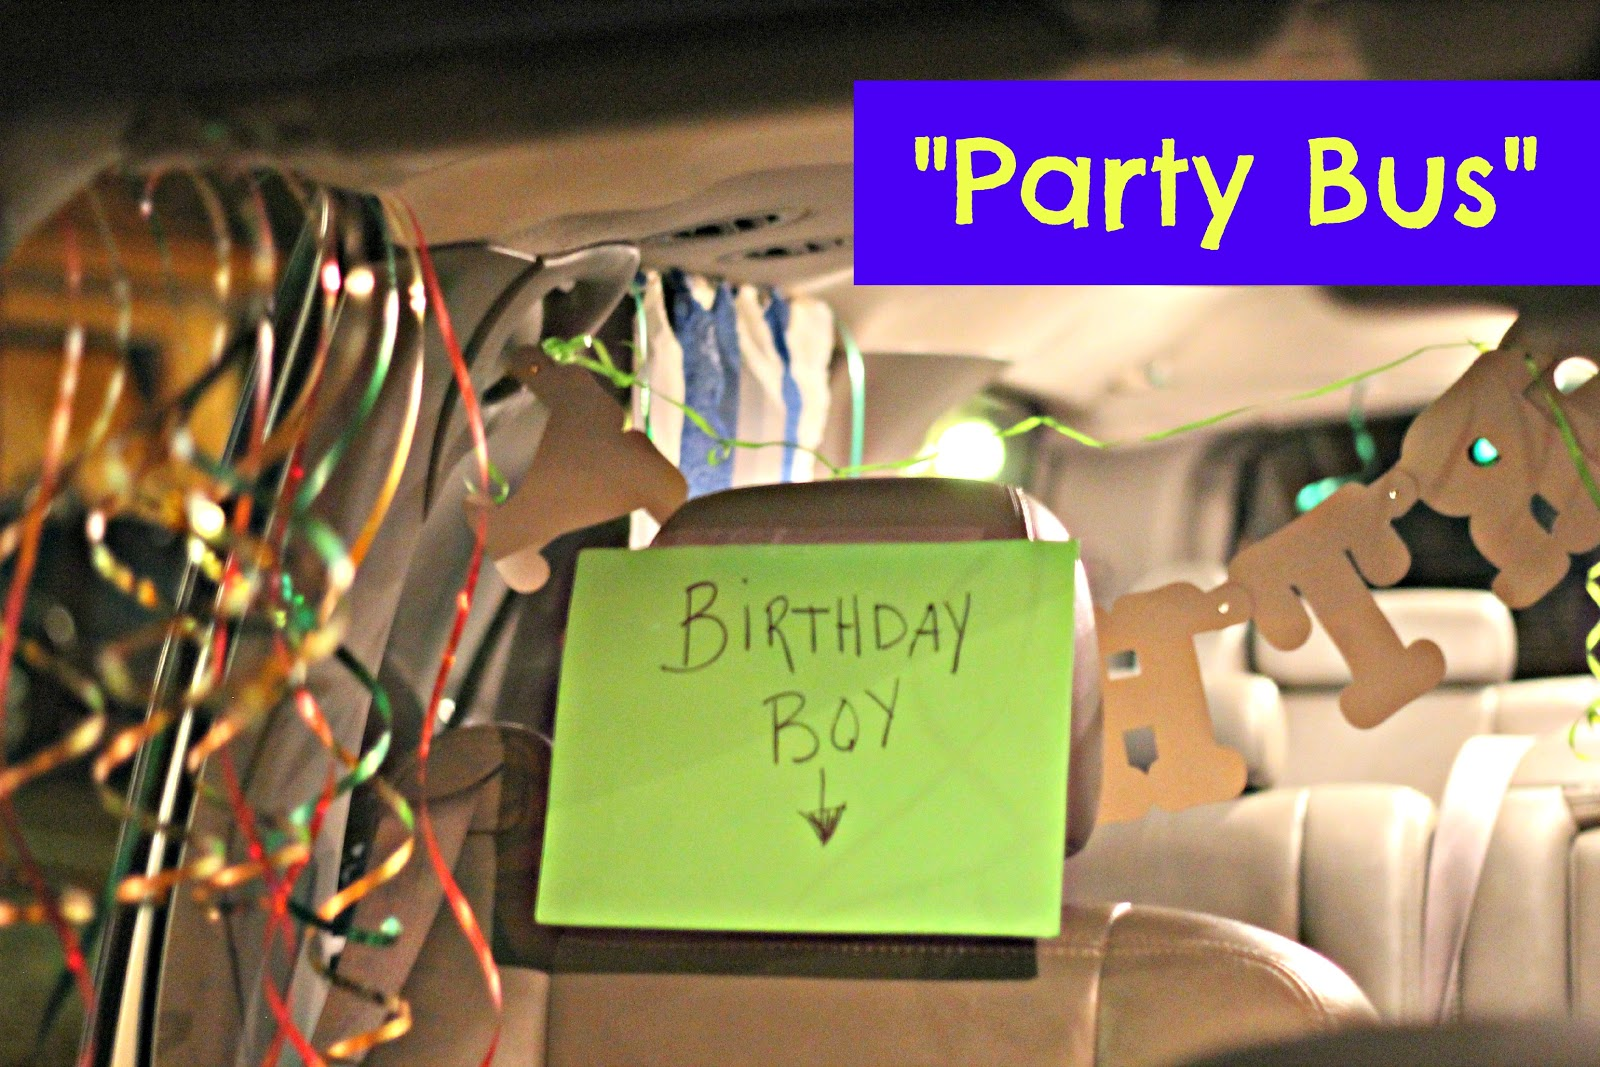 Party bus for sweet 16 the party bus